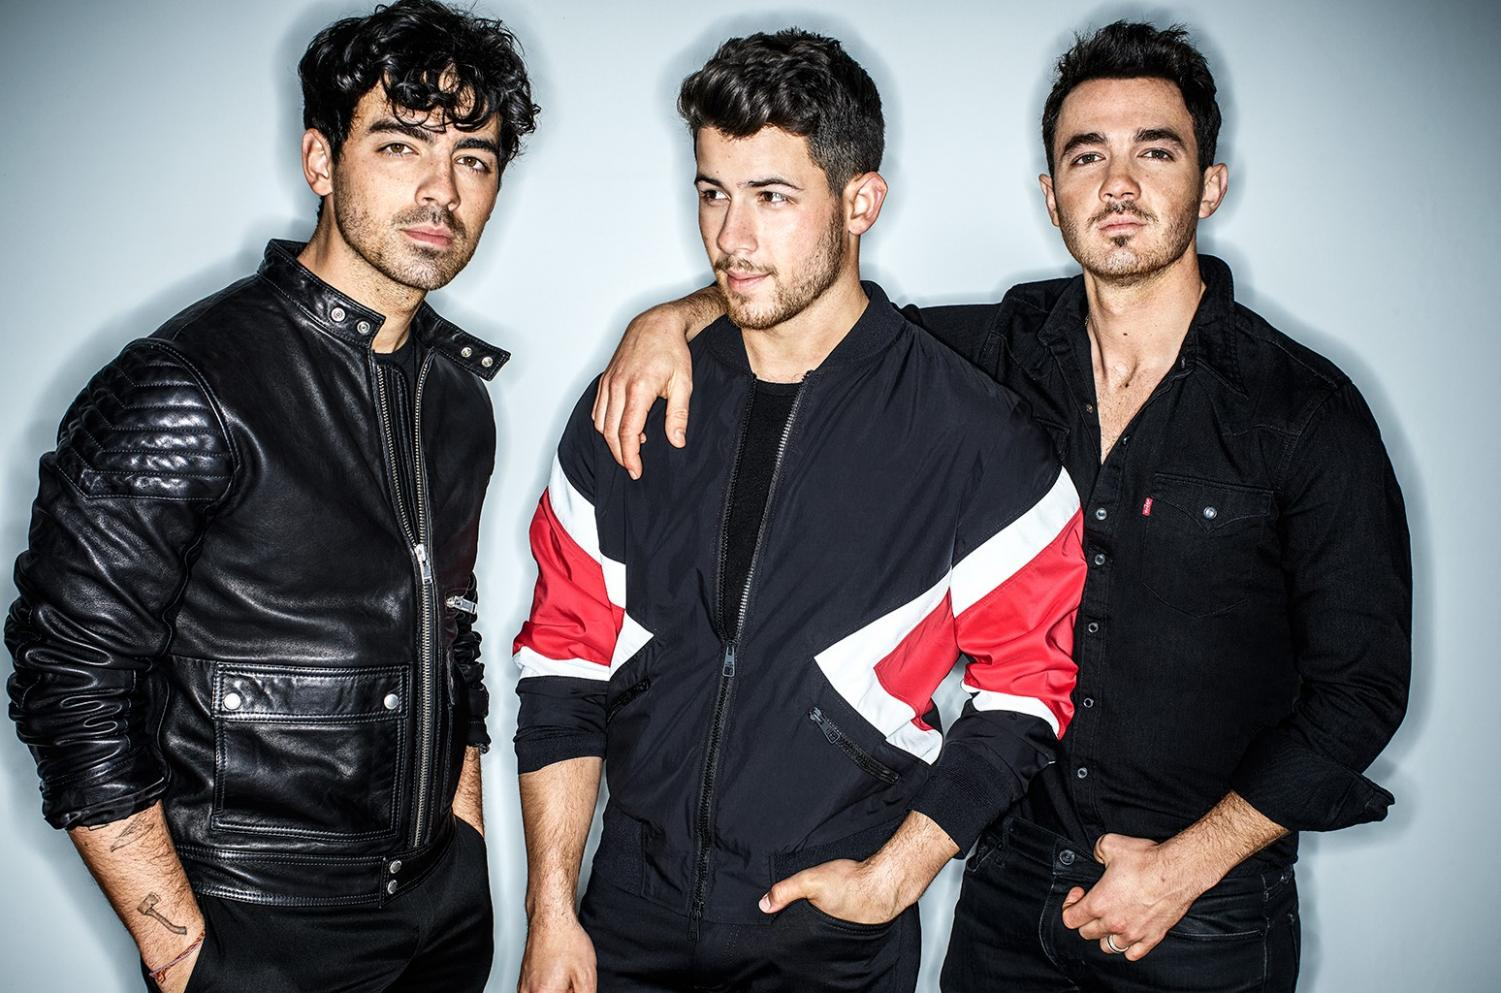 Caption: The Jonas Brothers made an unexpected but much needed return in early 2019. The band not only reunited, but they also released a single immediately after announcing their comeback. (Photo credits: Billboard Magazine--https://www.billboard.com/articles/columns/chart-beat/8500981/jonas-brothers-return-pop-songs-chart-new-single-sucker.)